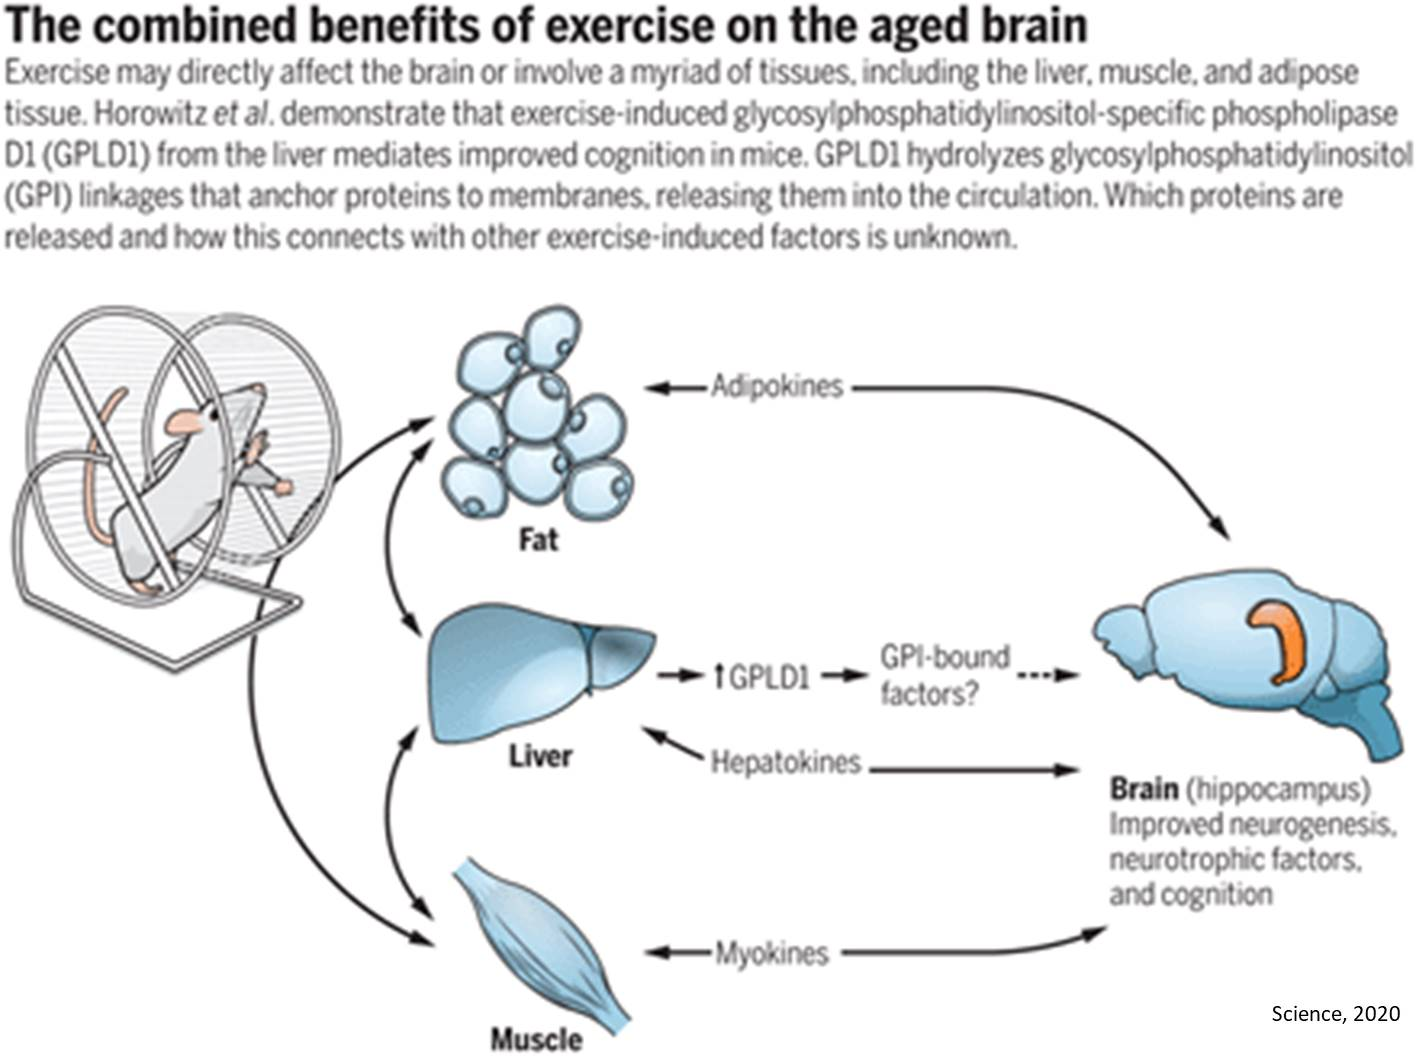 Brain rejuvenation from blood plama transfer from exercised mice to sedentary